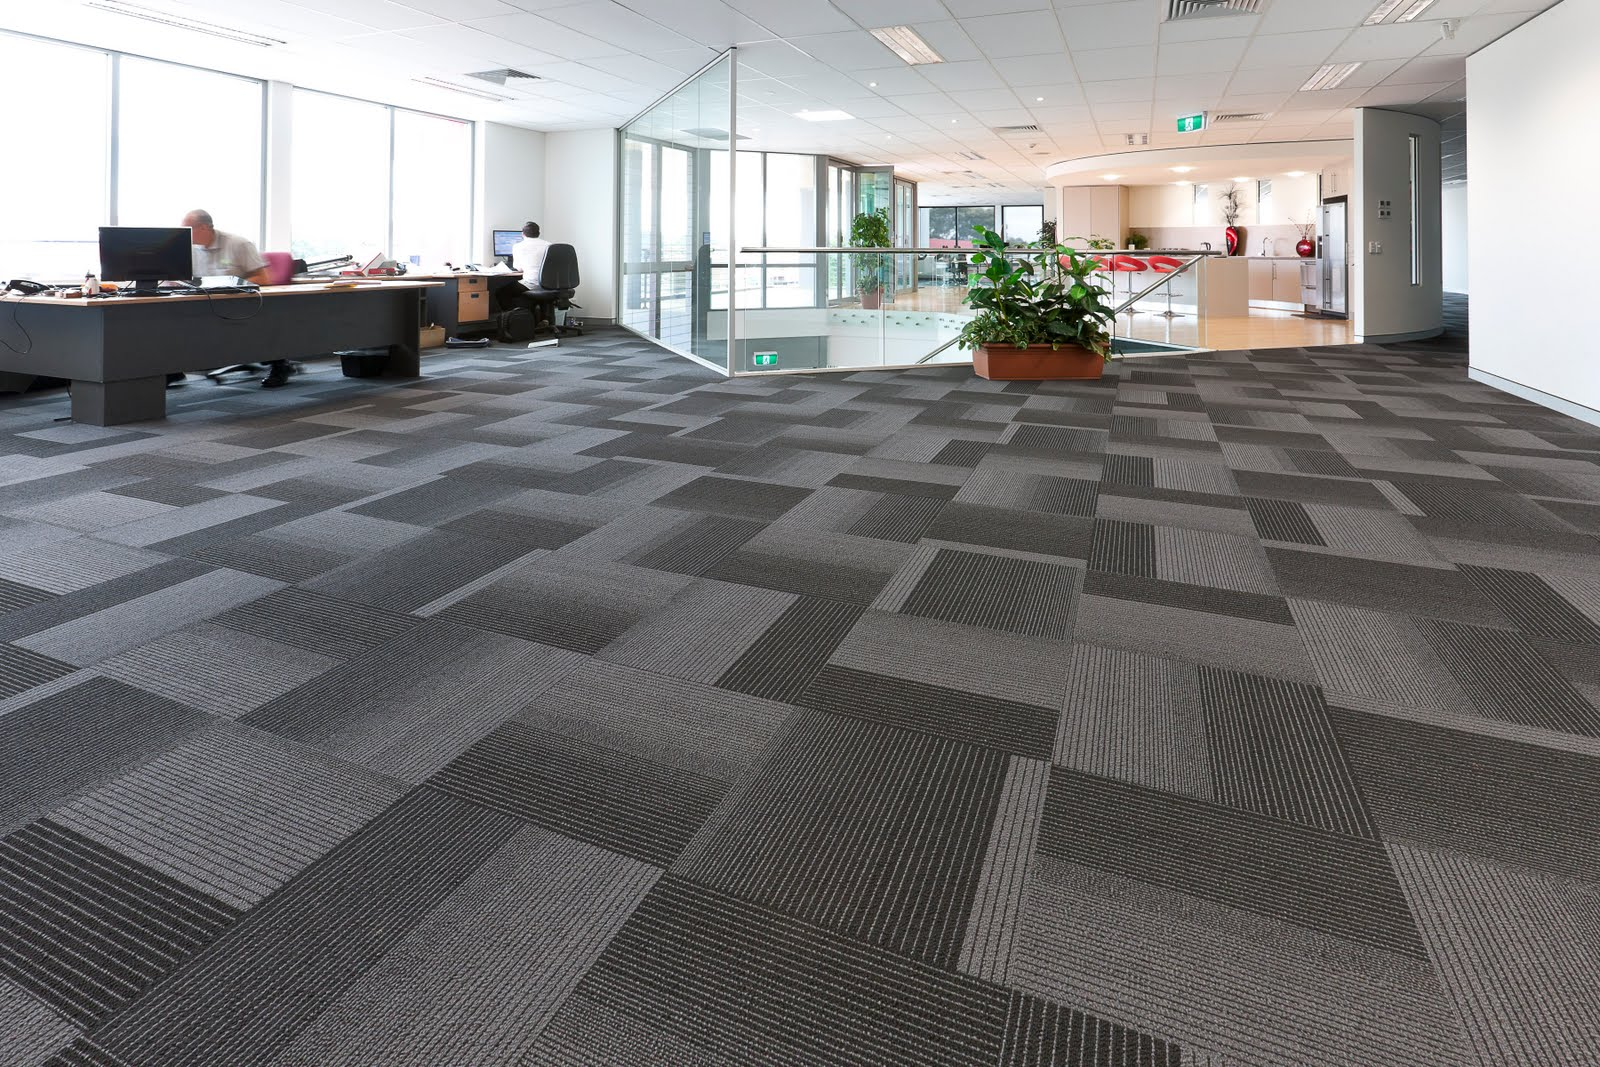 carpet design ideas wide office space with dark grey and silver wall to wall carpet design MJGKDNQ